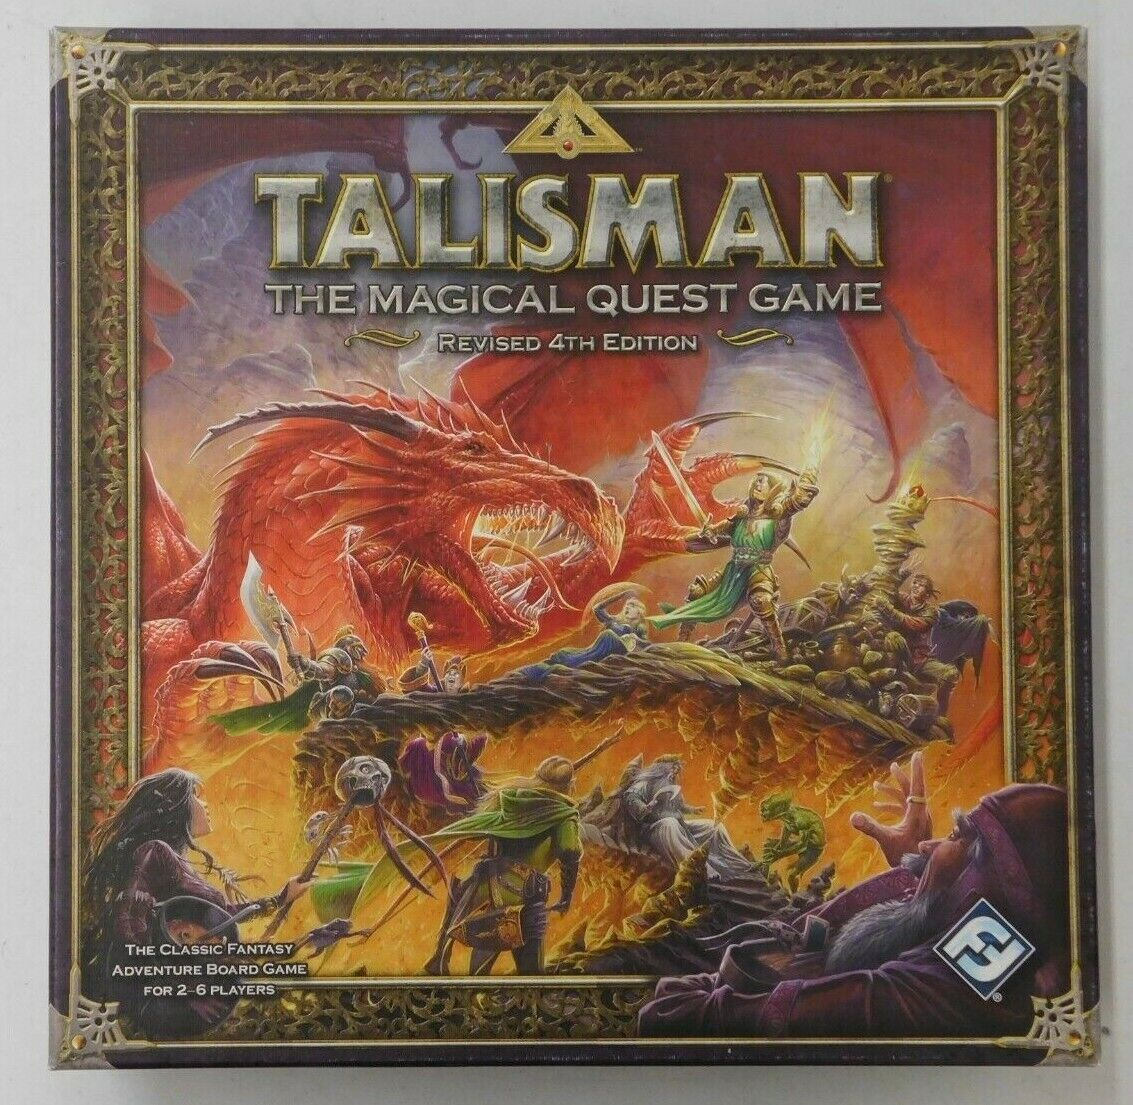 TALIShomme  THE MIGHTY QUEST REVISED 4TH ED - Fantasy Flumière Games 2007 Board Game  2018 dernier